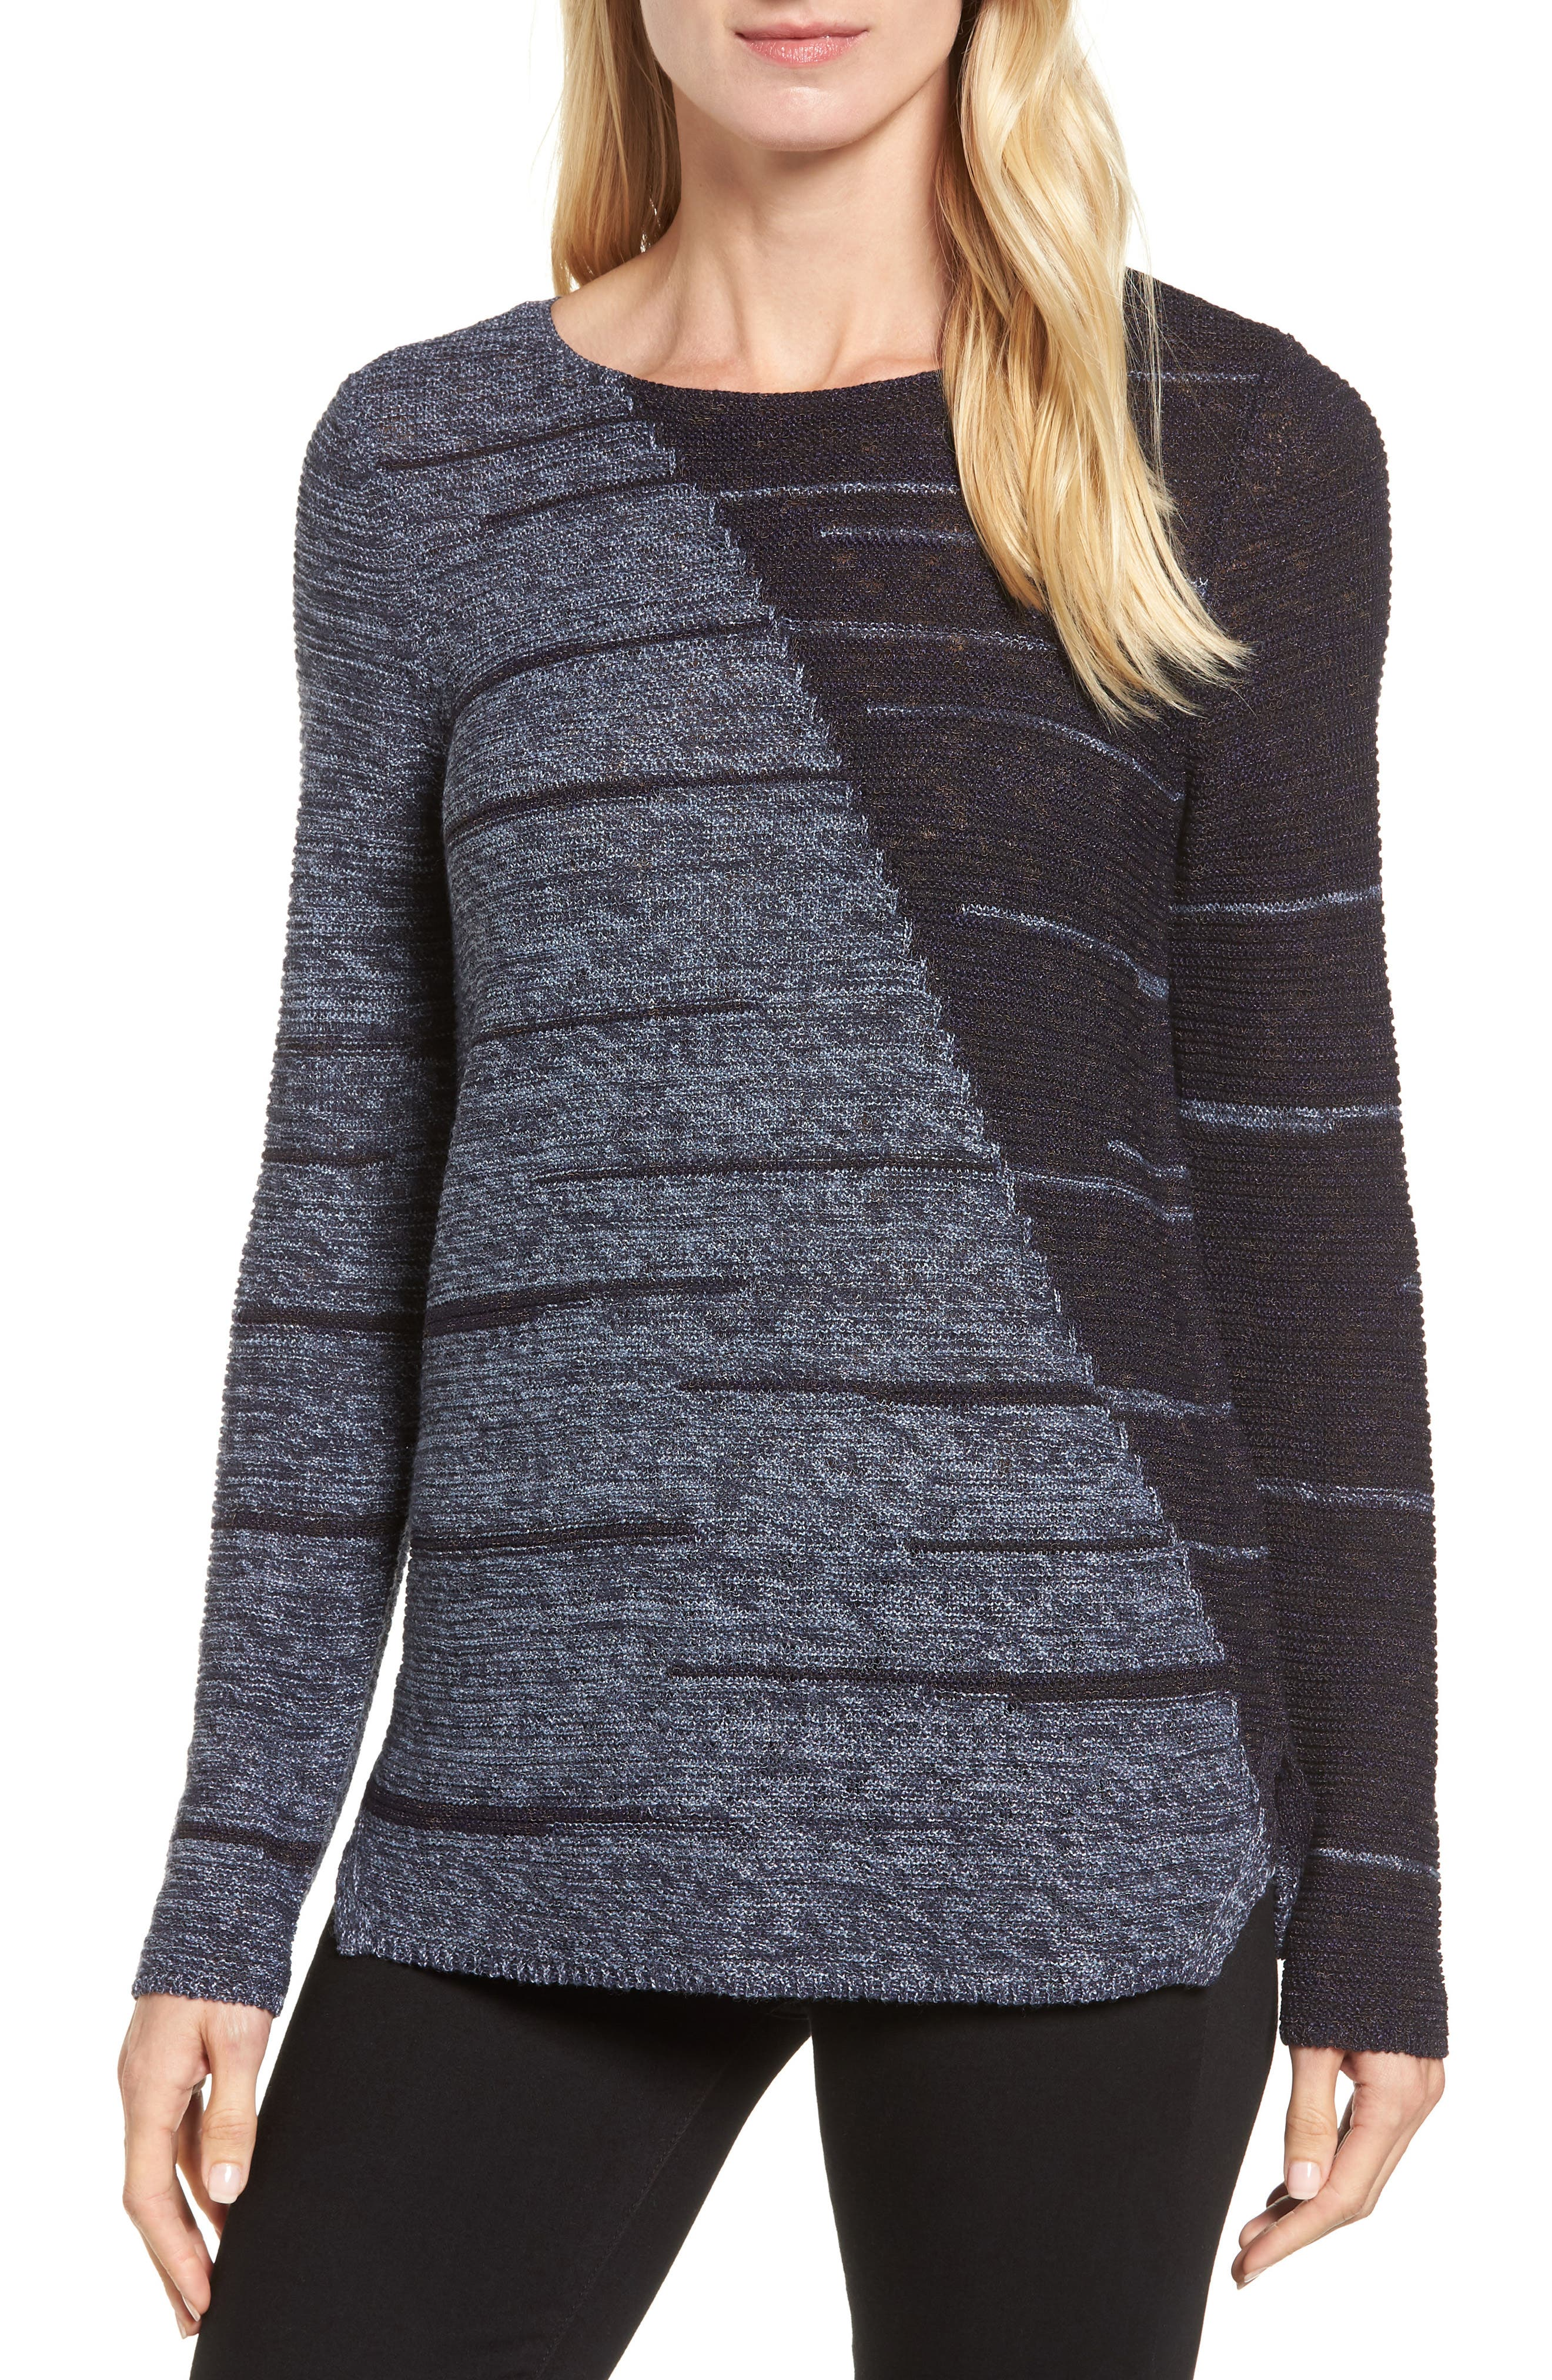 New Reflections Top,                         Main,                         color, Faded Navy